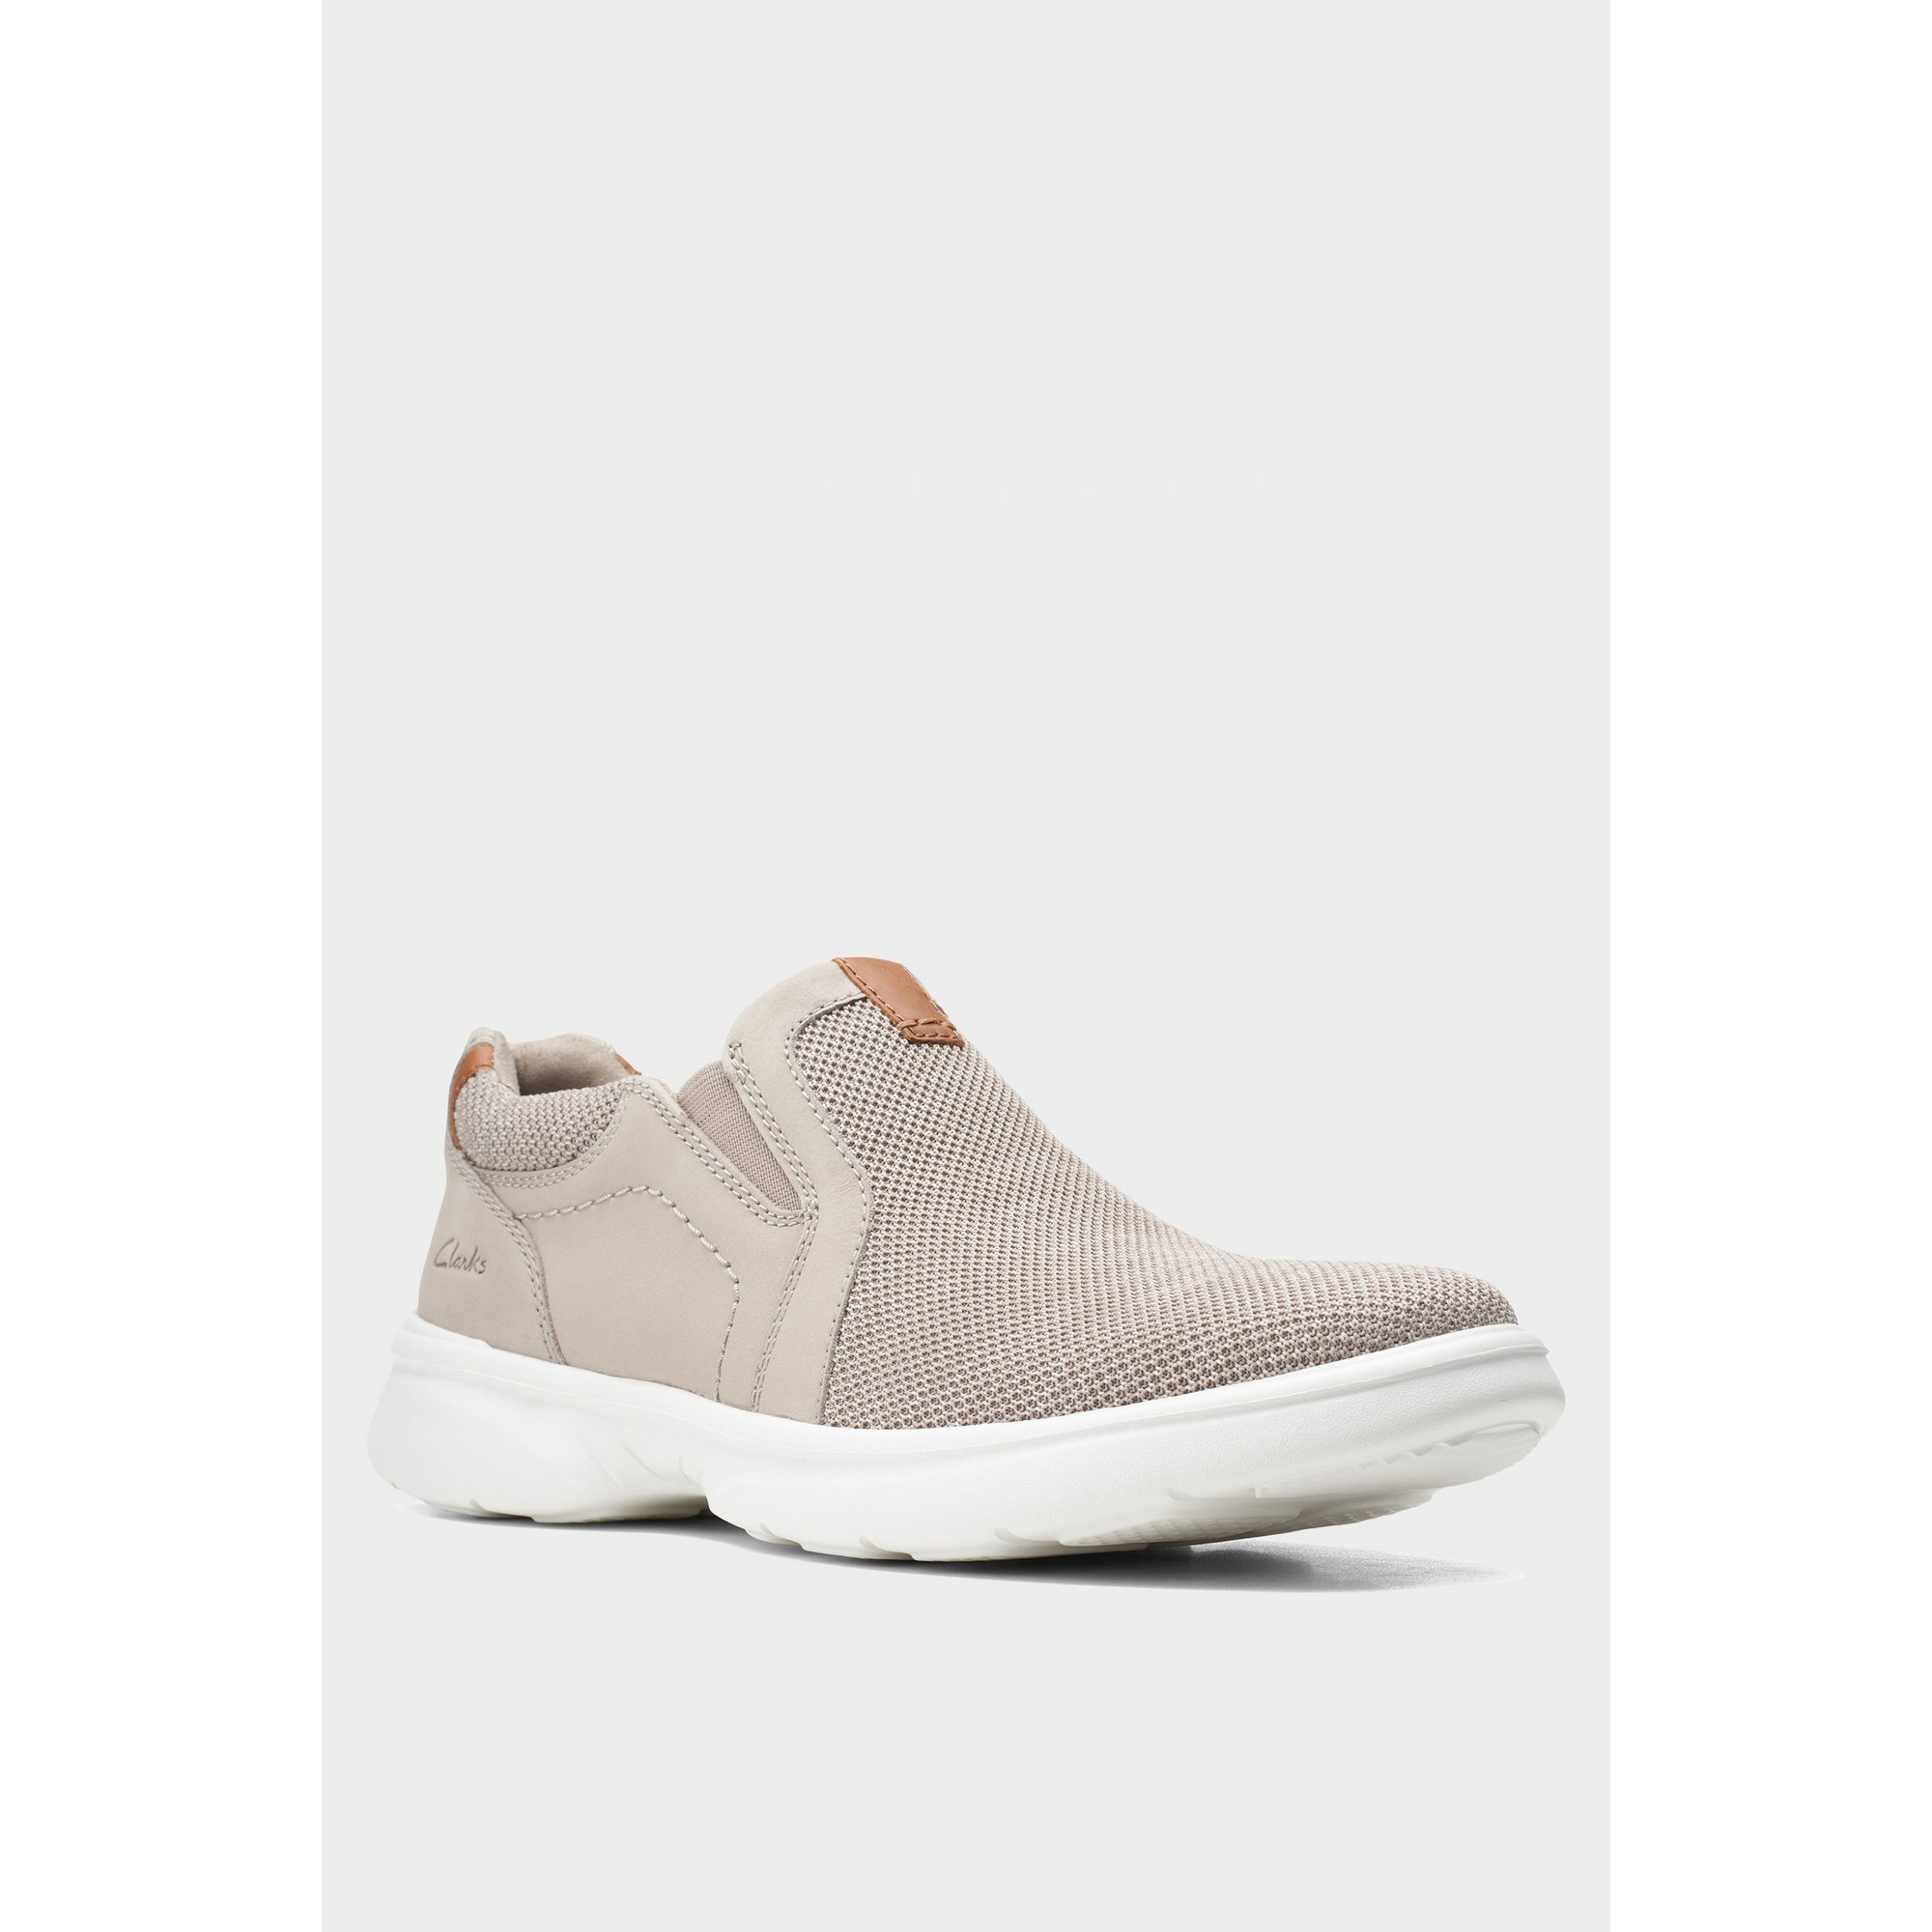 Image of Clarks Bradley Easy Stone Shoes